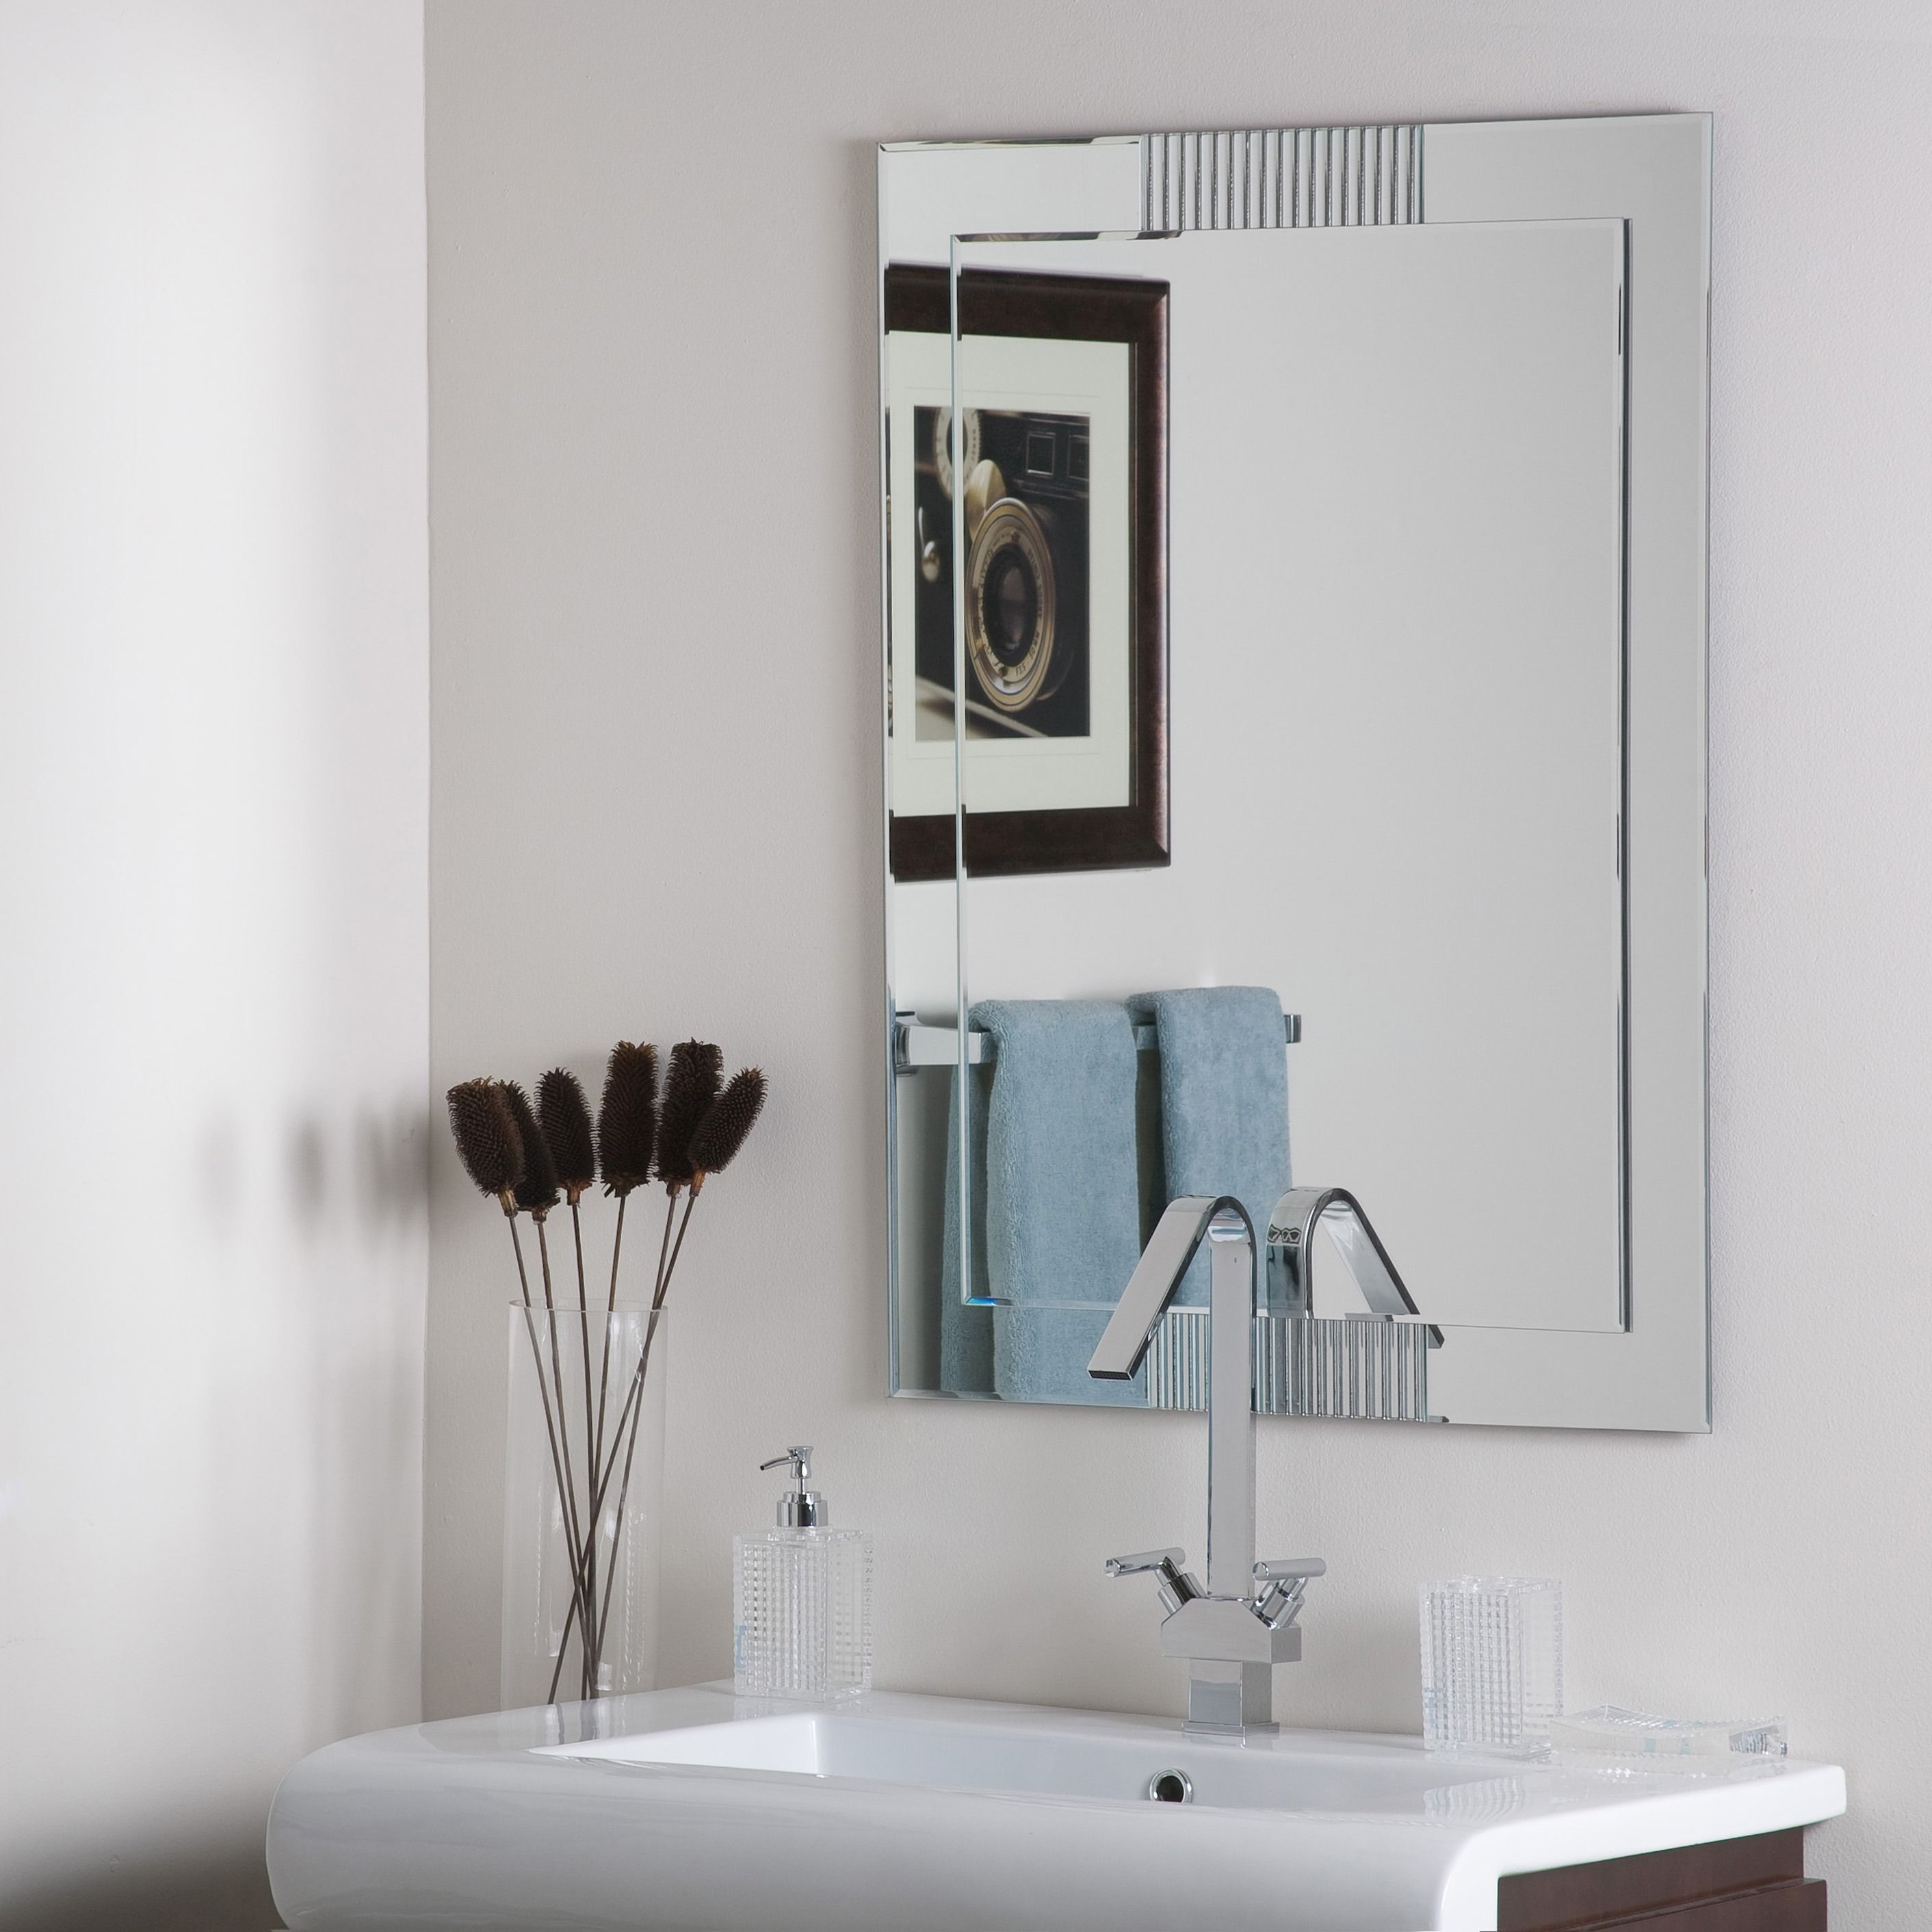 2019 Logan Frameless Wall Mirrors In This Stylish Frameless Wall Mirror Is The Latest Design In Francisca (View 1 of 20)